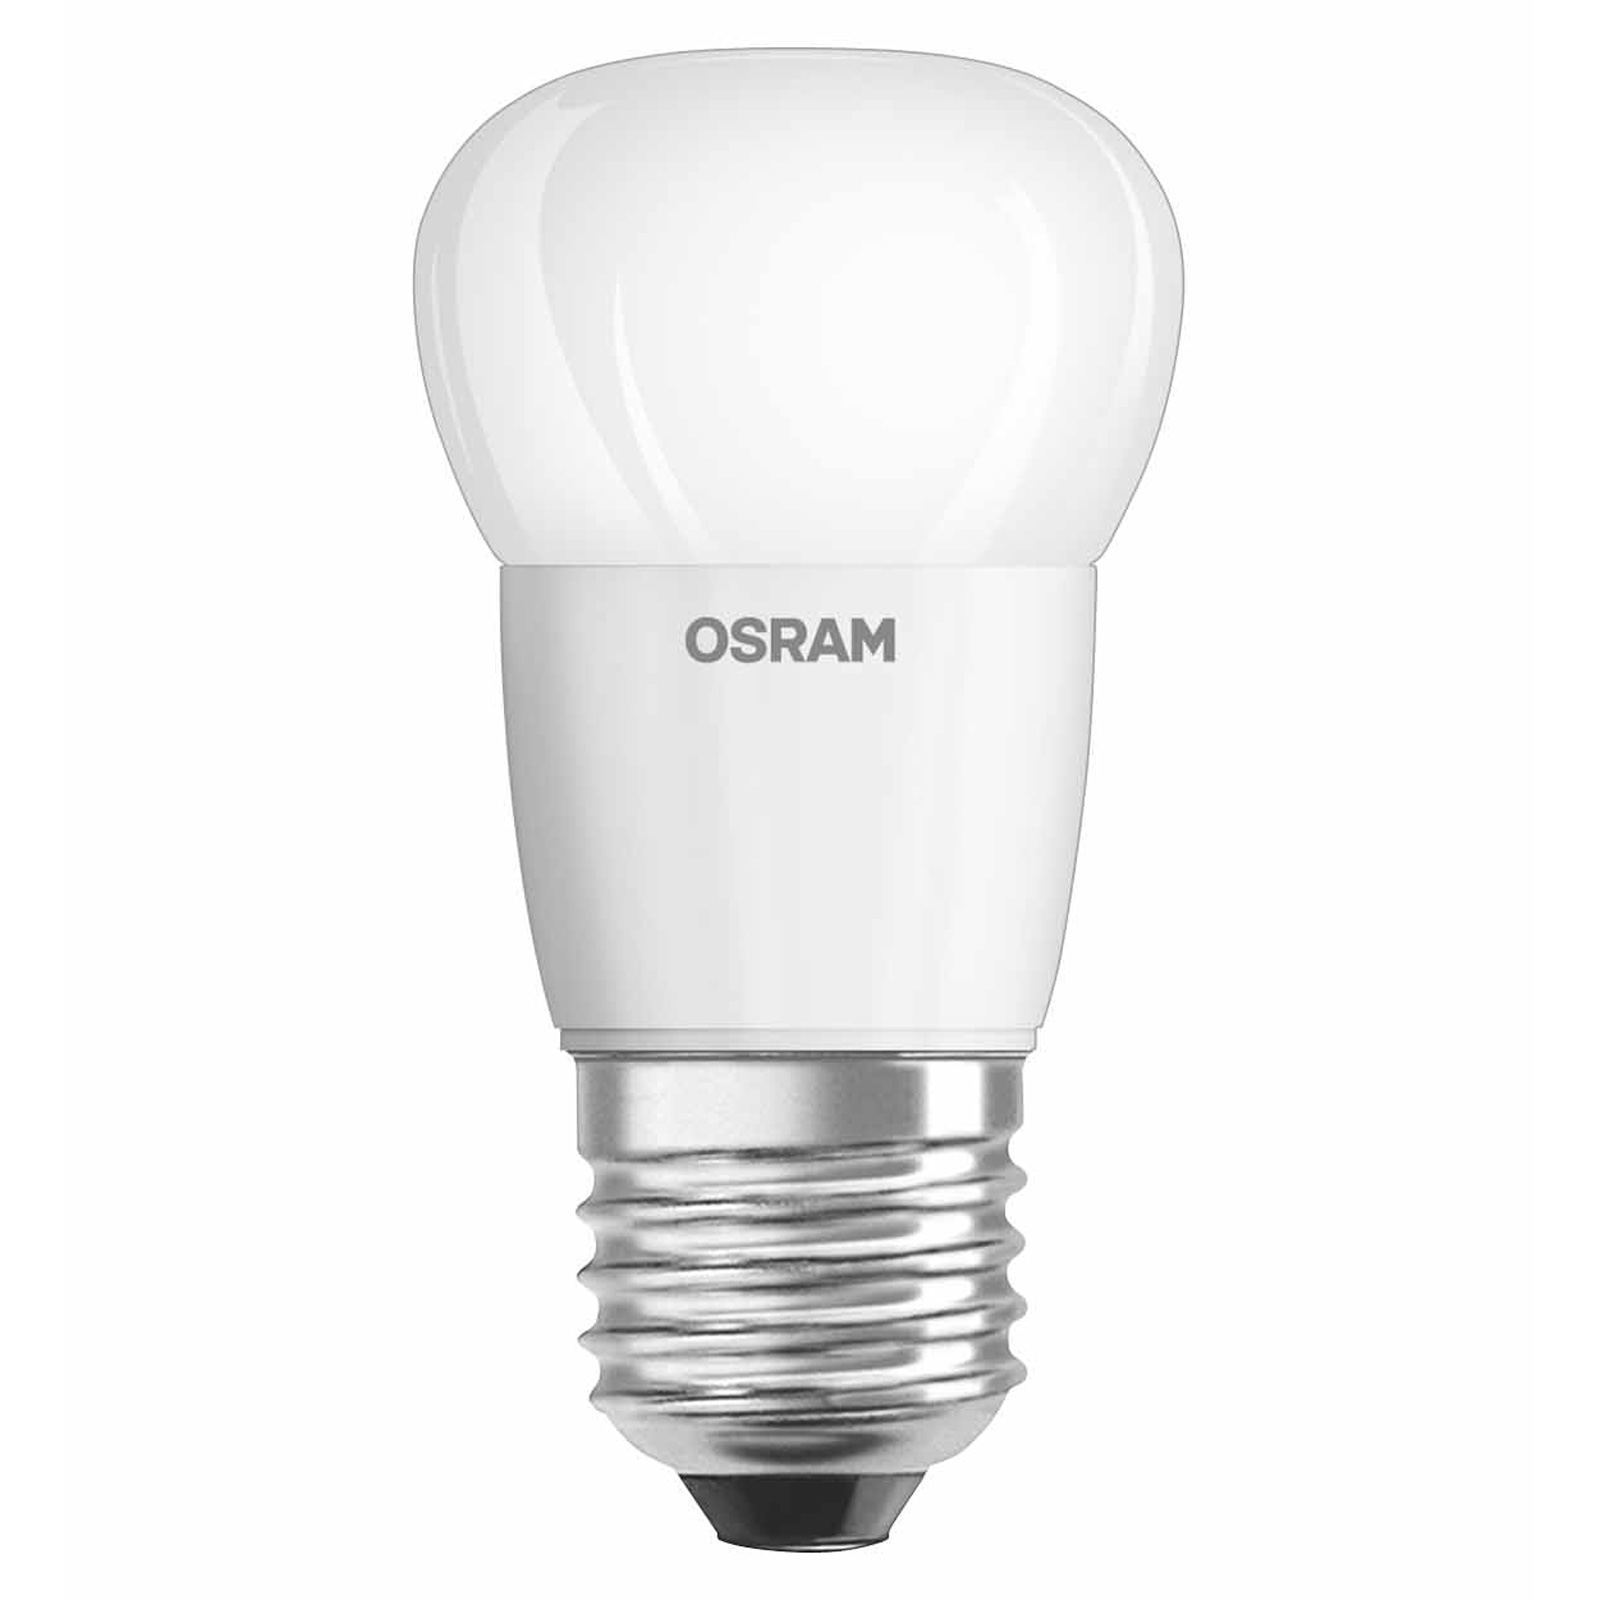 10200-OSRAM-LED-STAR-CLASSIC-P-40-E27-58-Watt-Ersatz-fuer-40-Watt-470-Lumen-warmweiss-1 Wunderbar Led Mr11 Gu4 Warmweiss Dekorationen